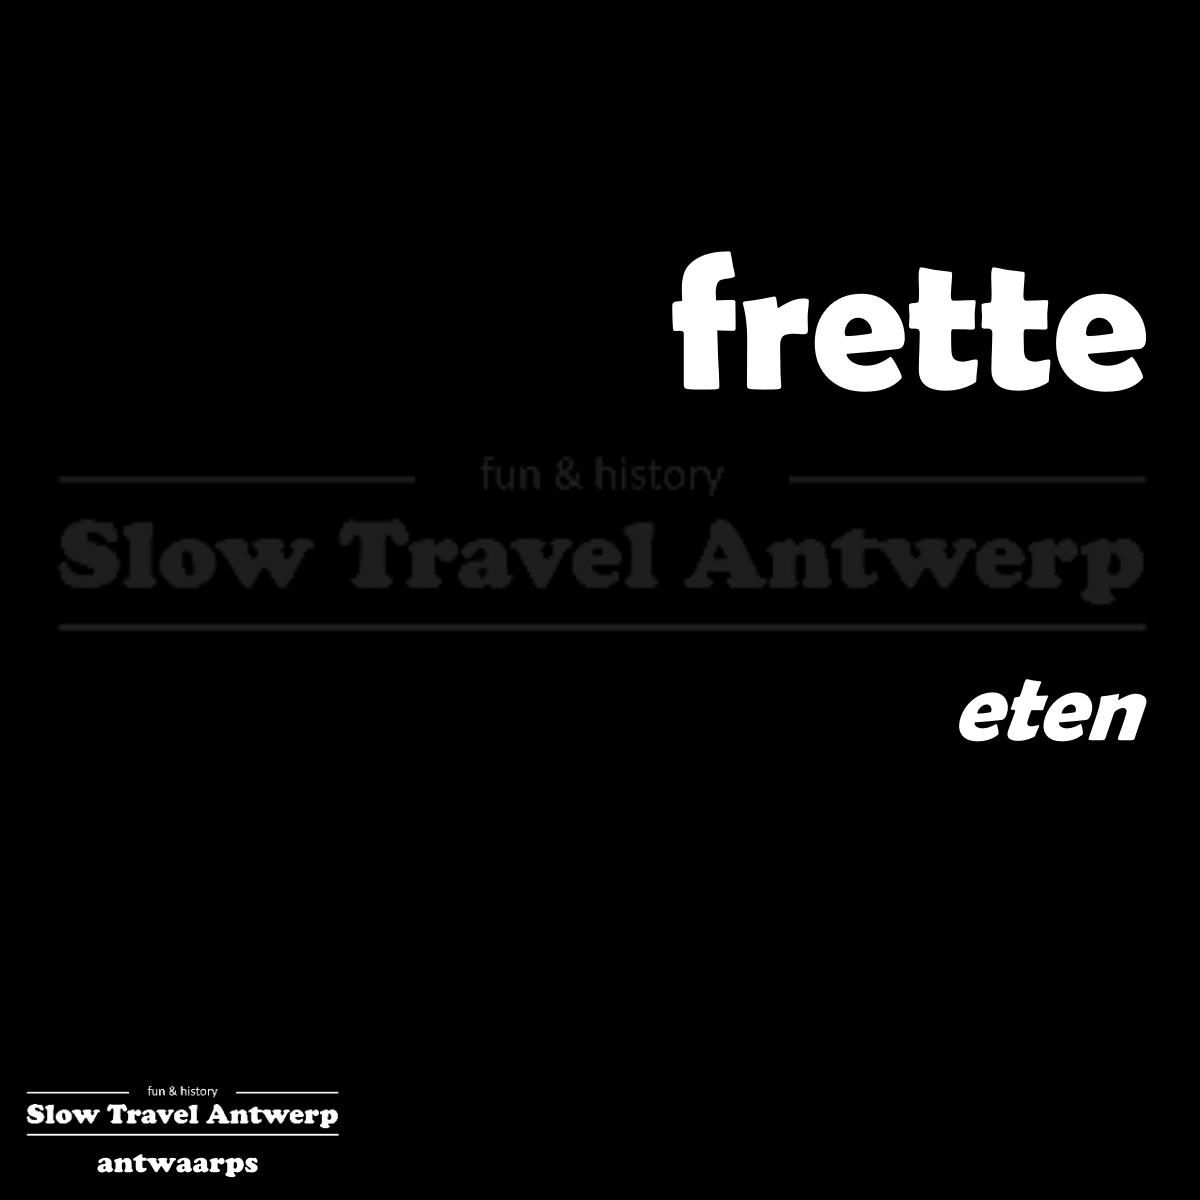 frette – eten – to eat